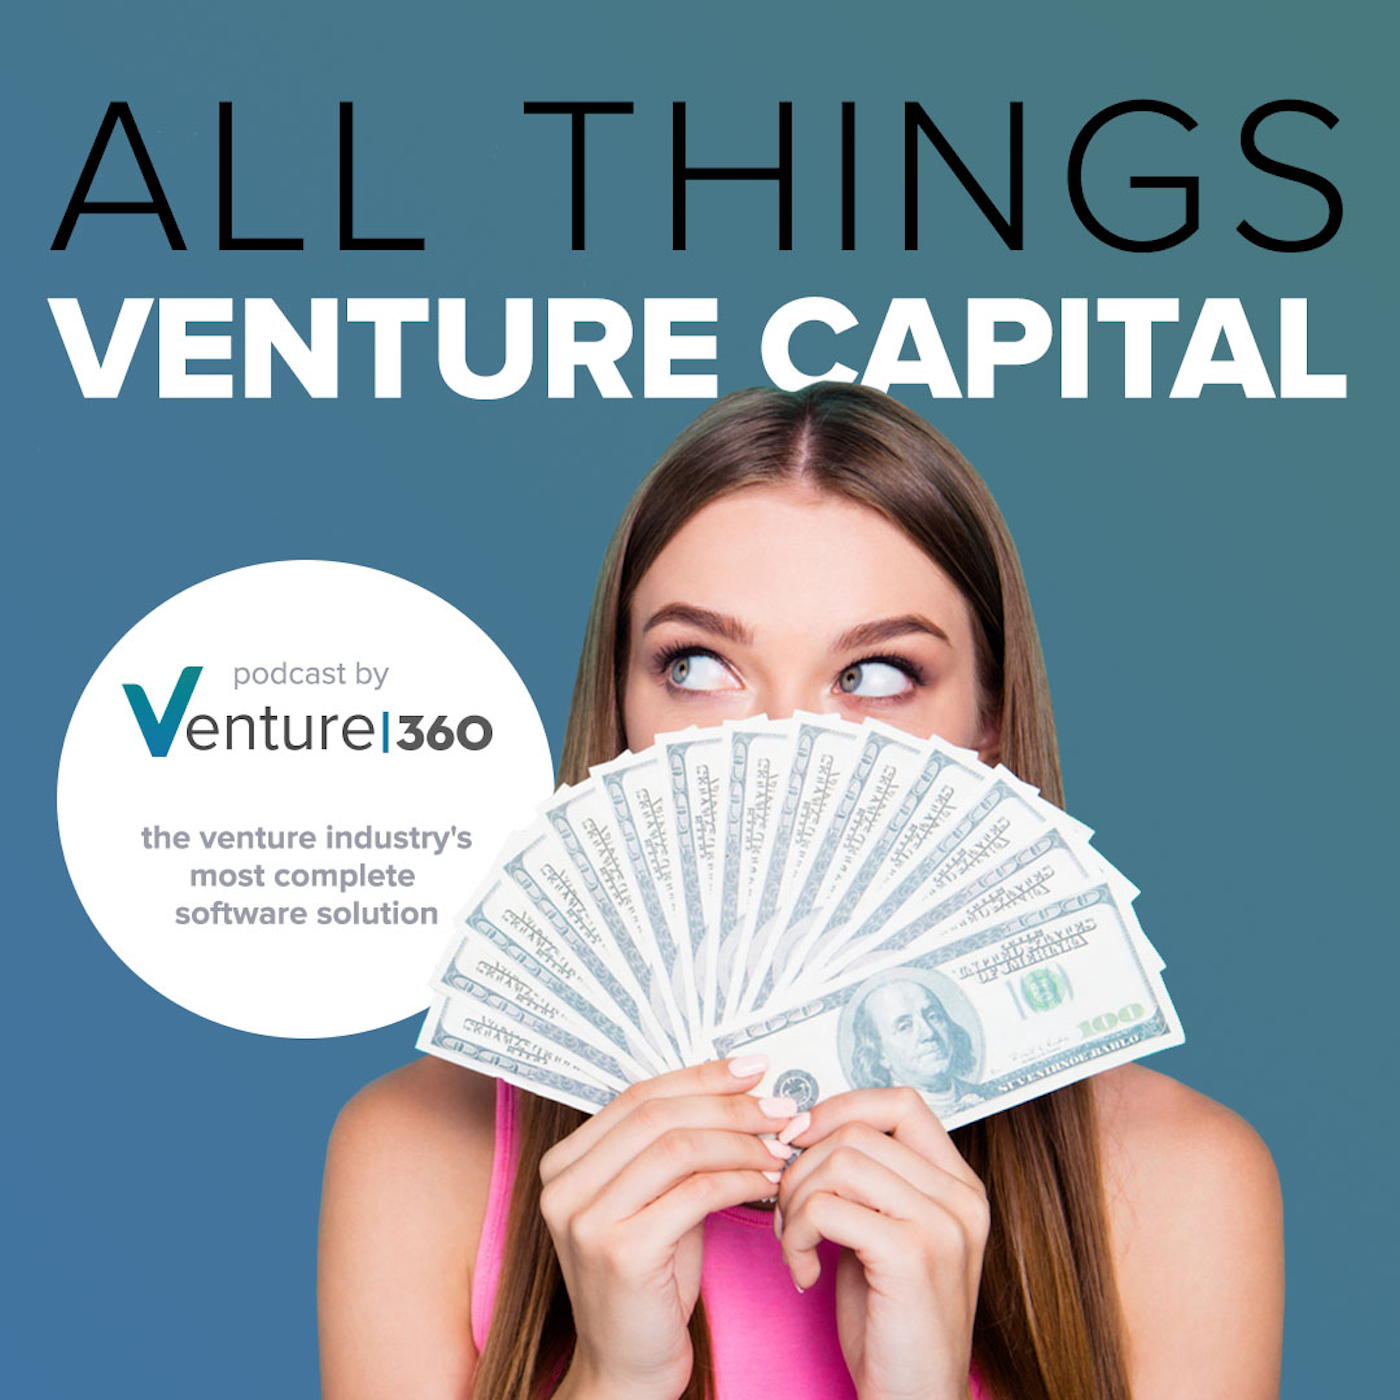 All Things Venture Capital show art